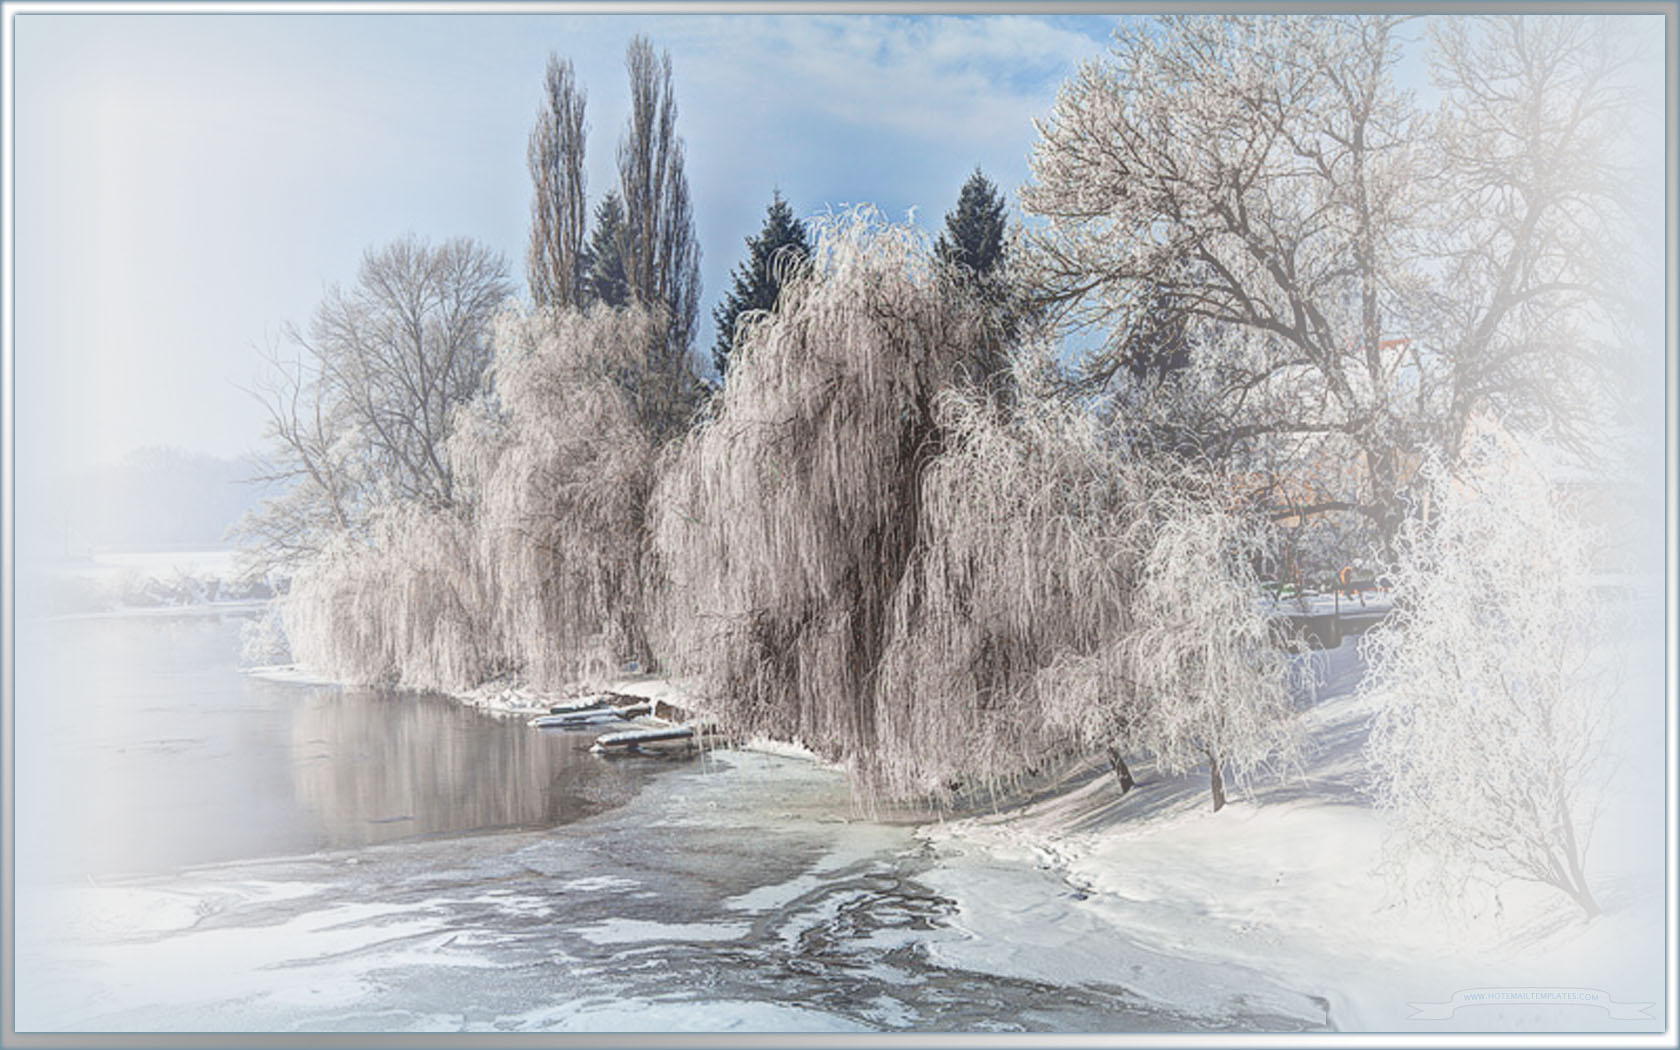 Winter Wallpaper For Computer Full Screen Winter pond Free HTML E Mail Templates